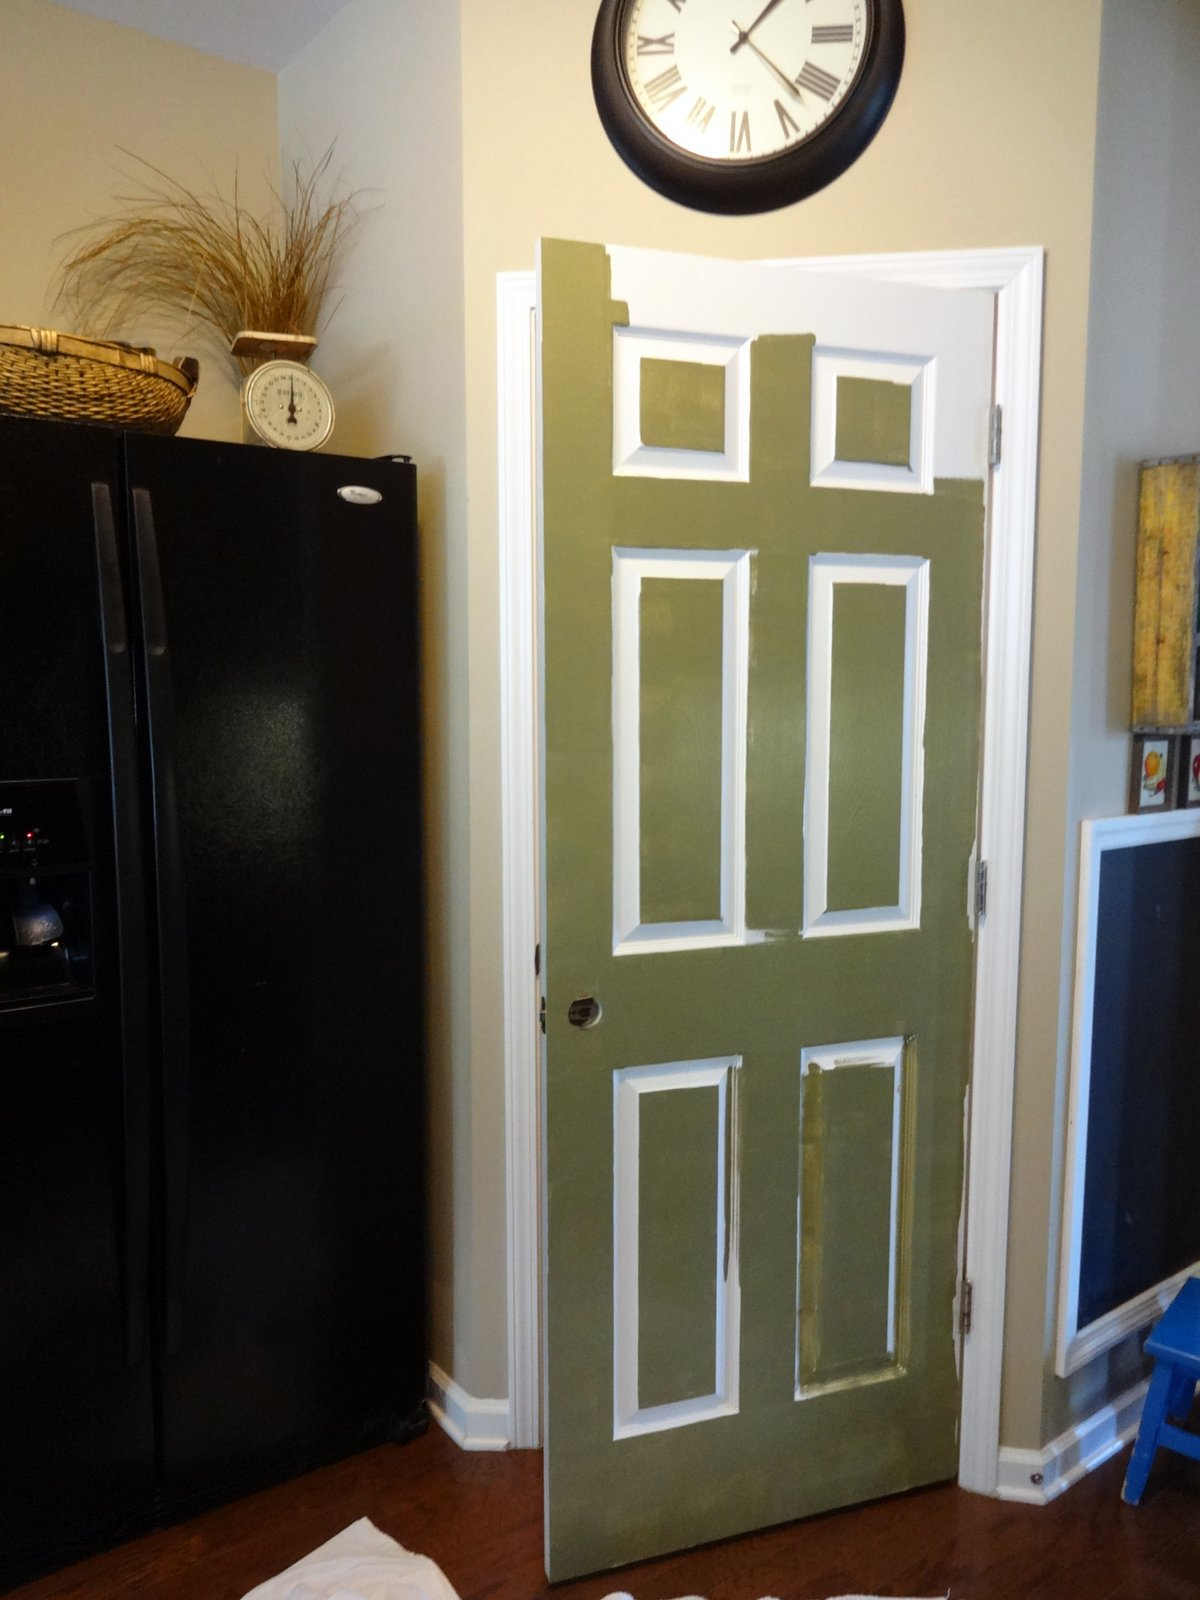 Painting Interior Doors When One Door Closes Decoration